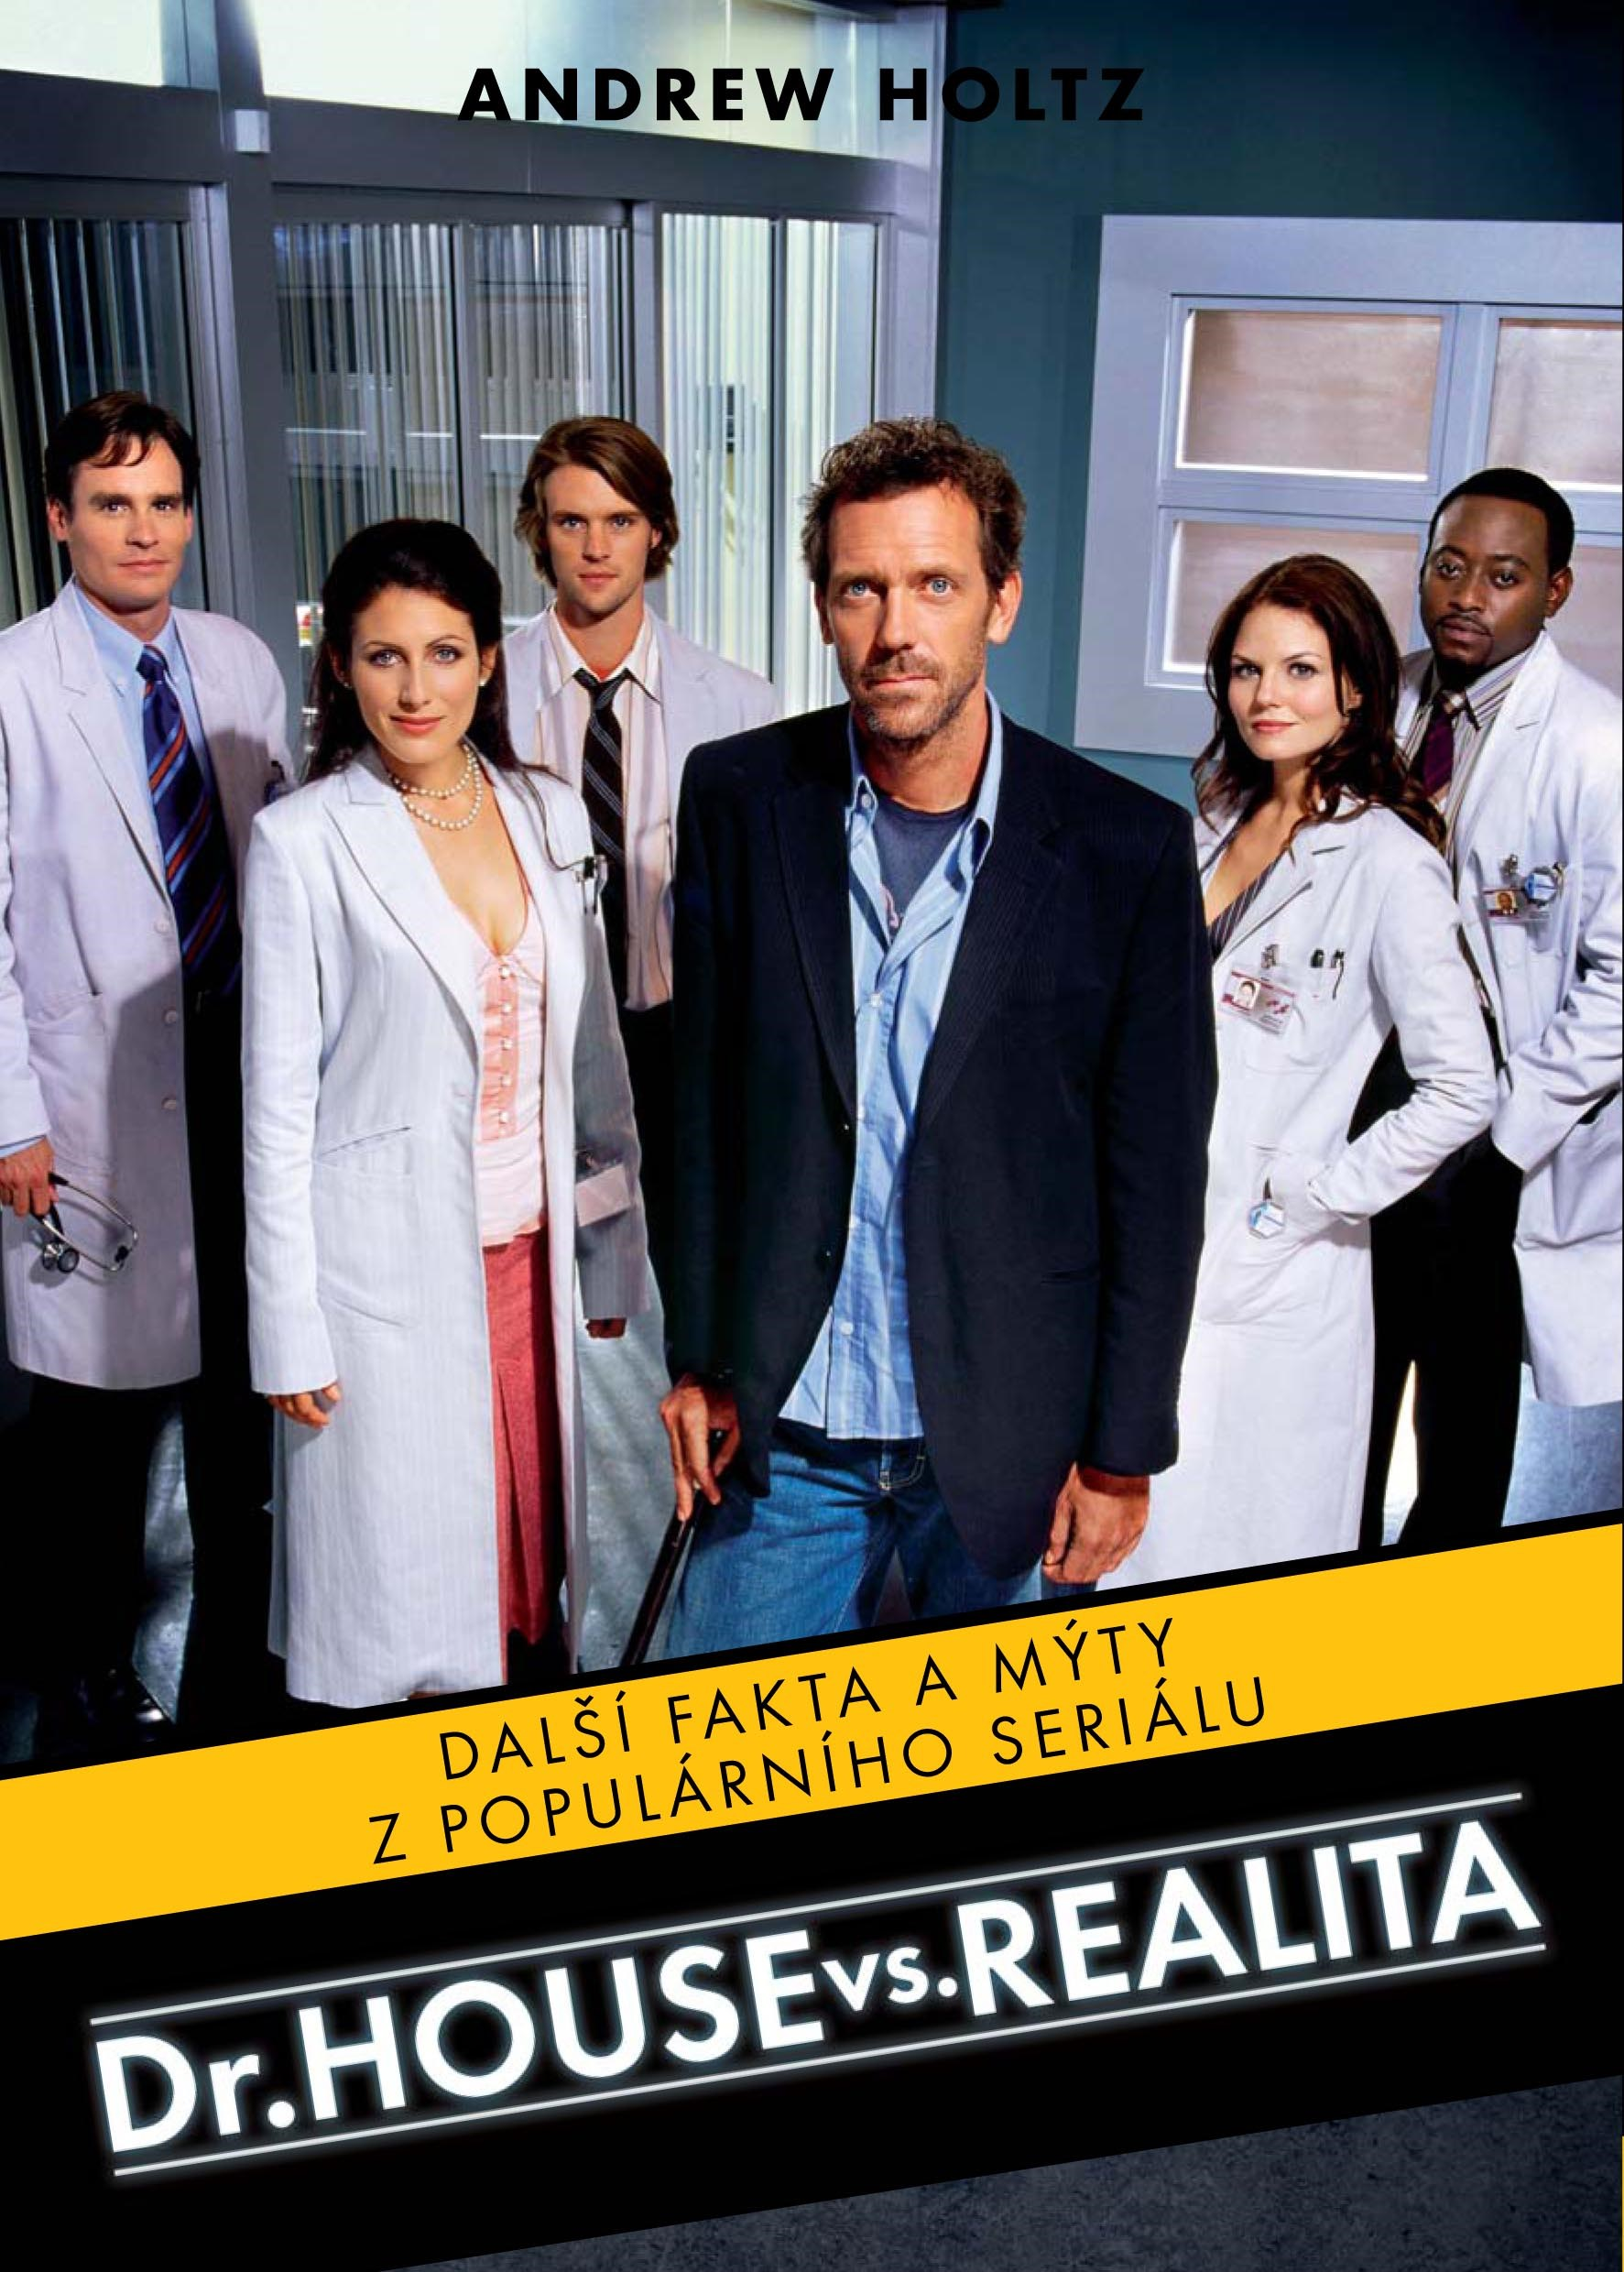 Dr. House vs. realita